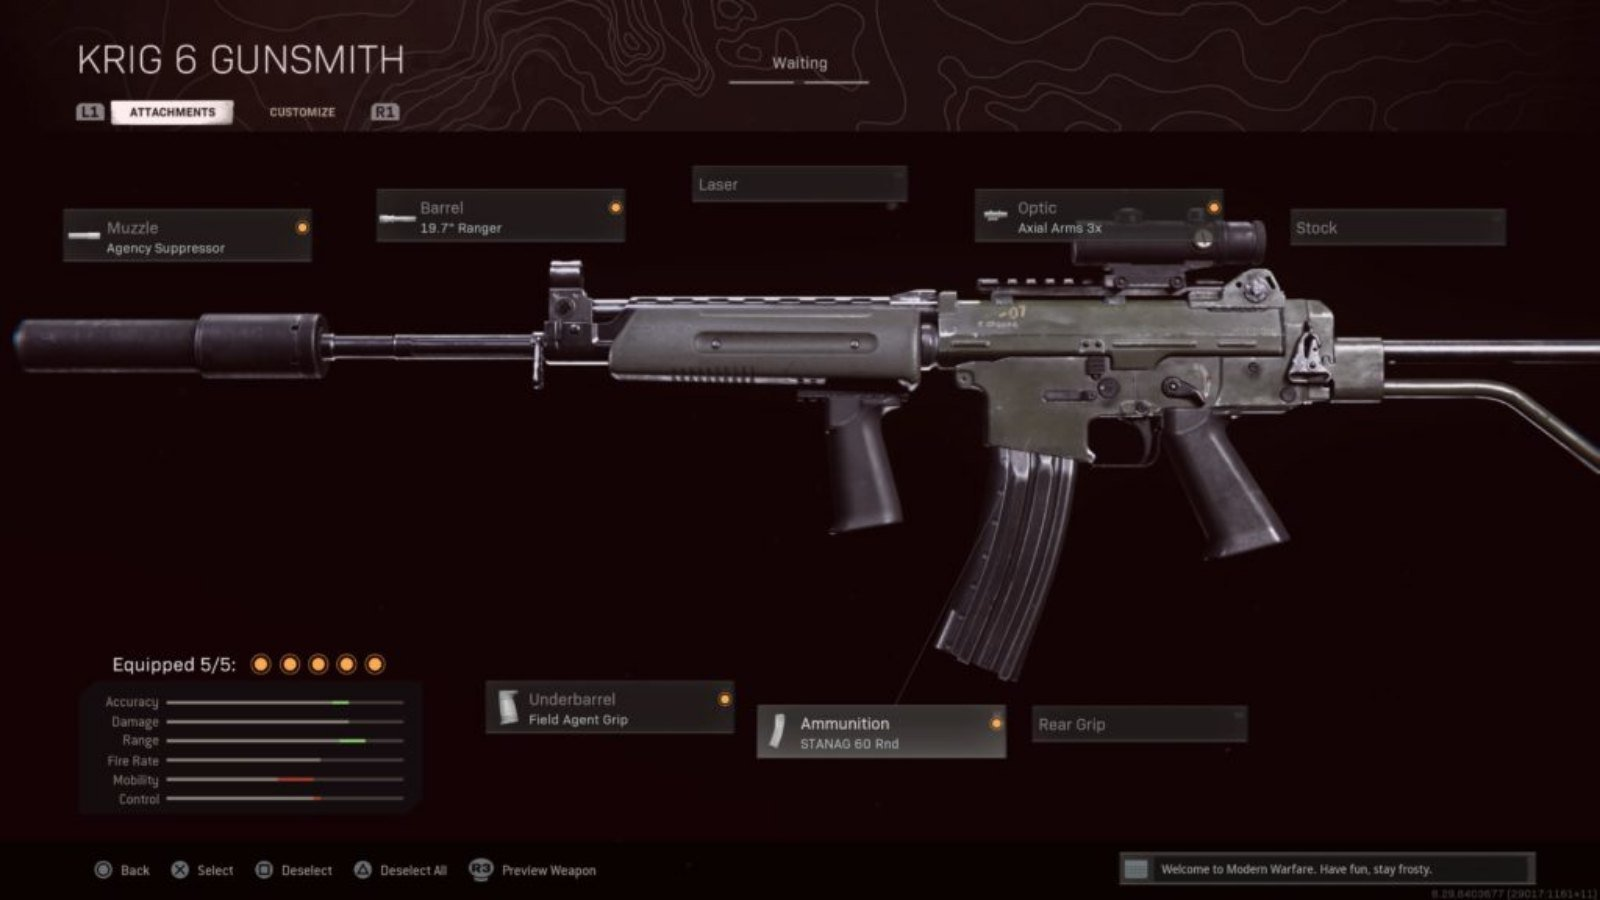 COD Warzone: The Best Krig 6 Warzone Loadout